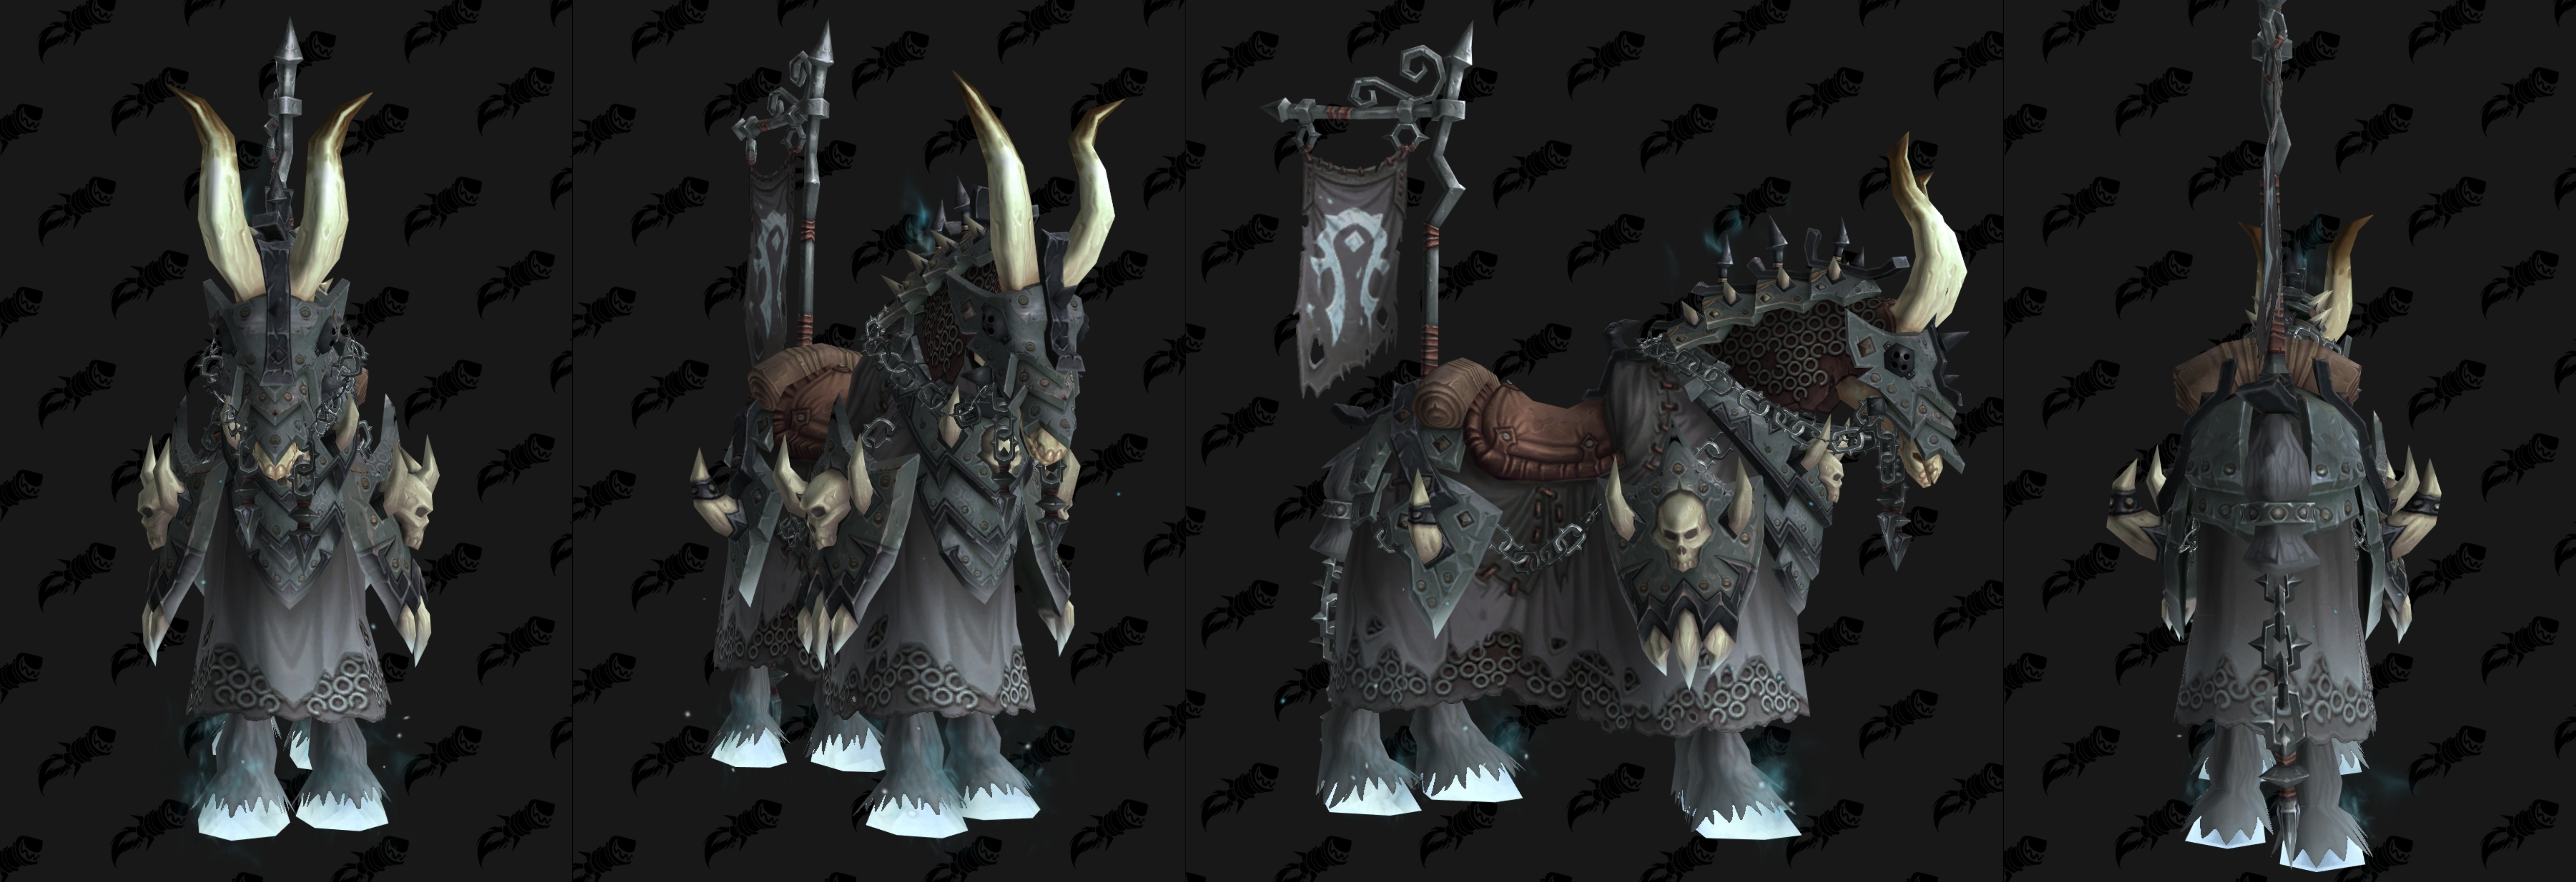 Battle For Azeroth Season 4 Pvp Rewards And Transmog Guides